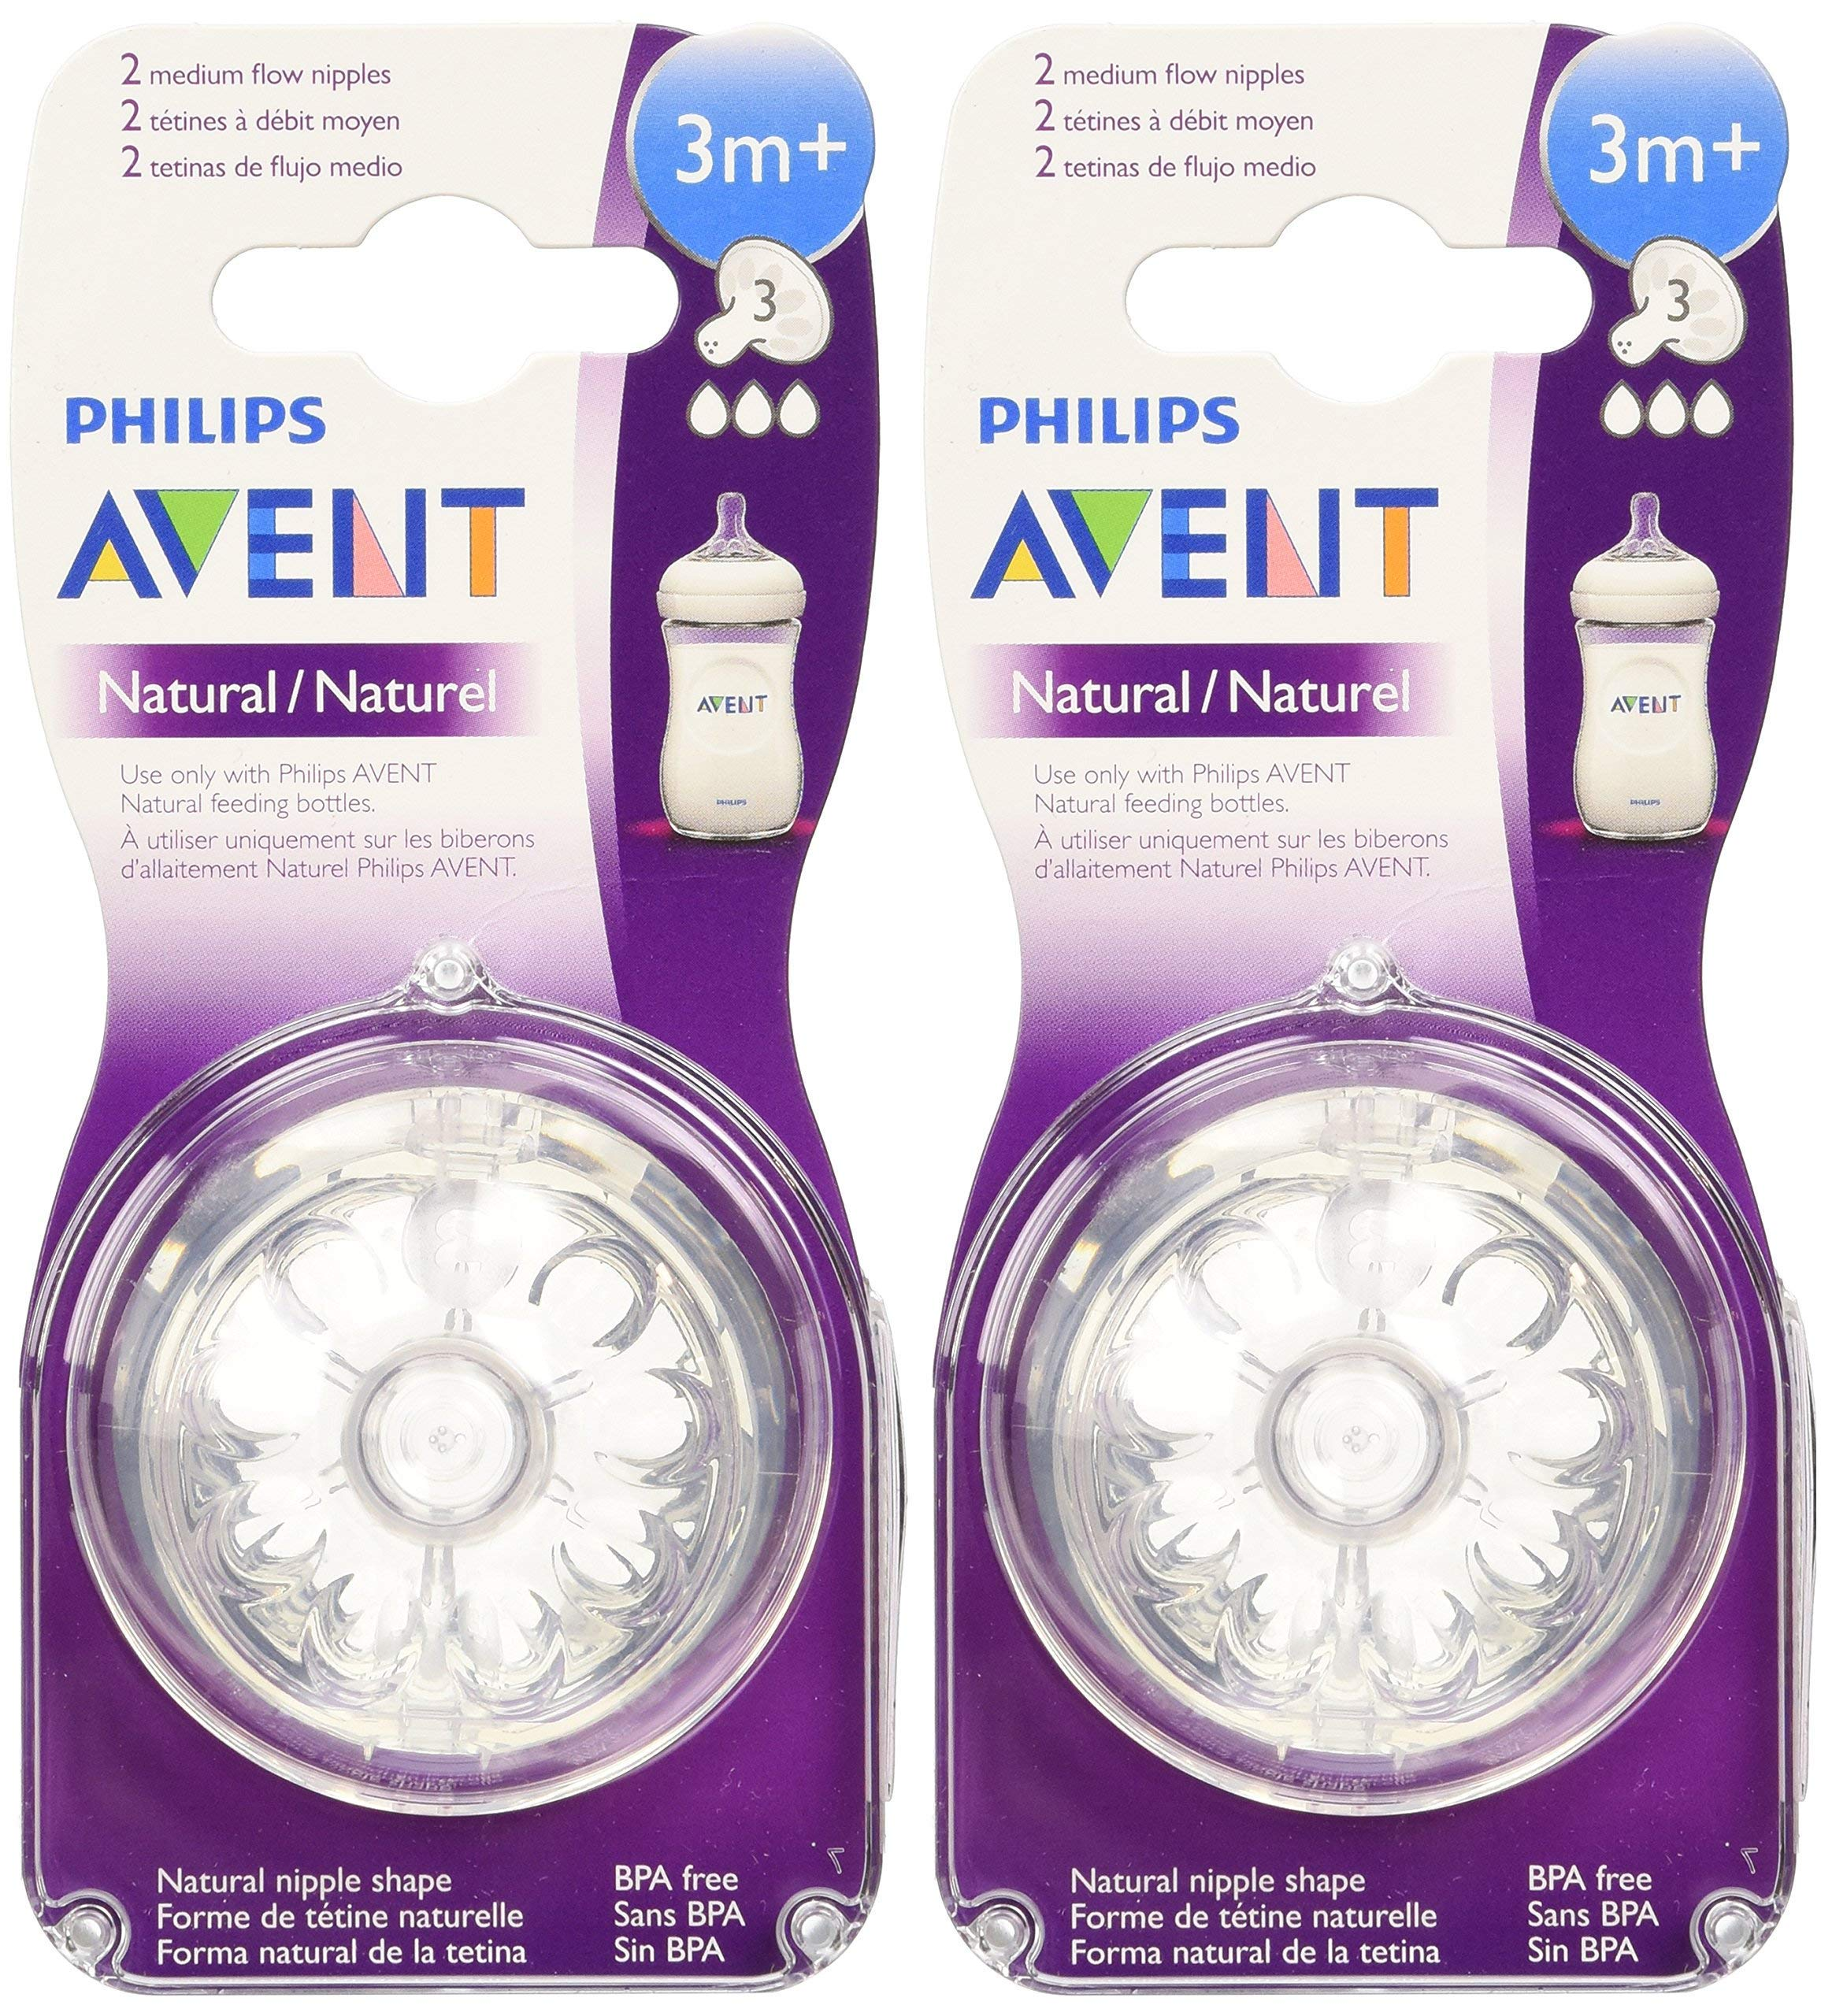 Philips Avent Natural Nipple Medium Flow - 4 Pack by Philips AVENT